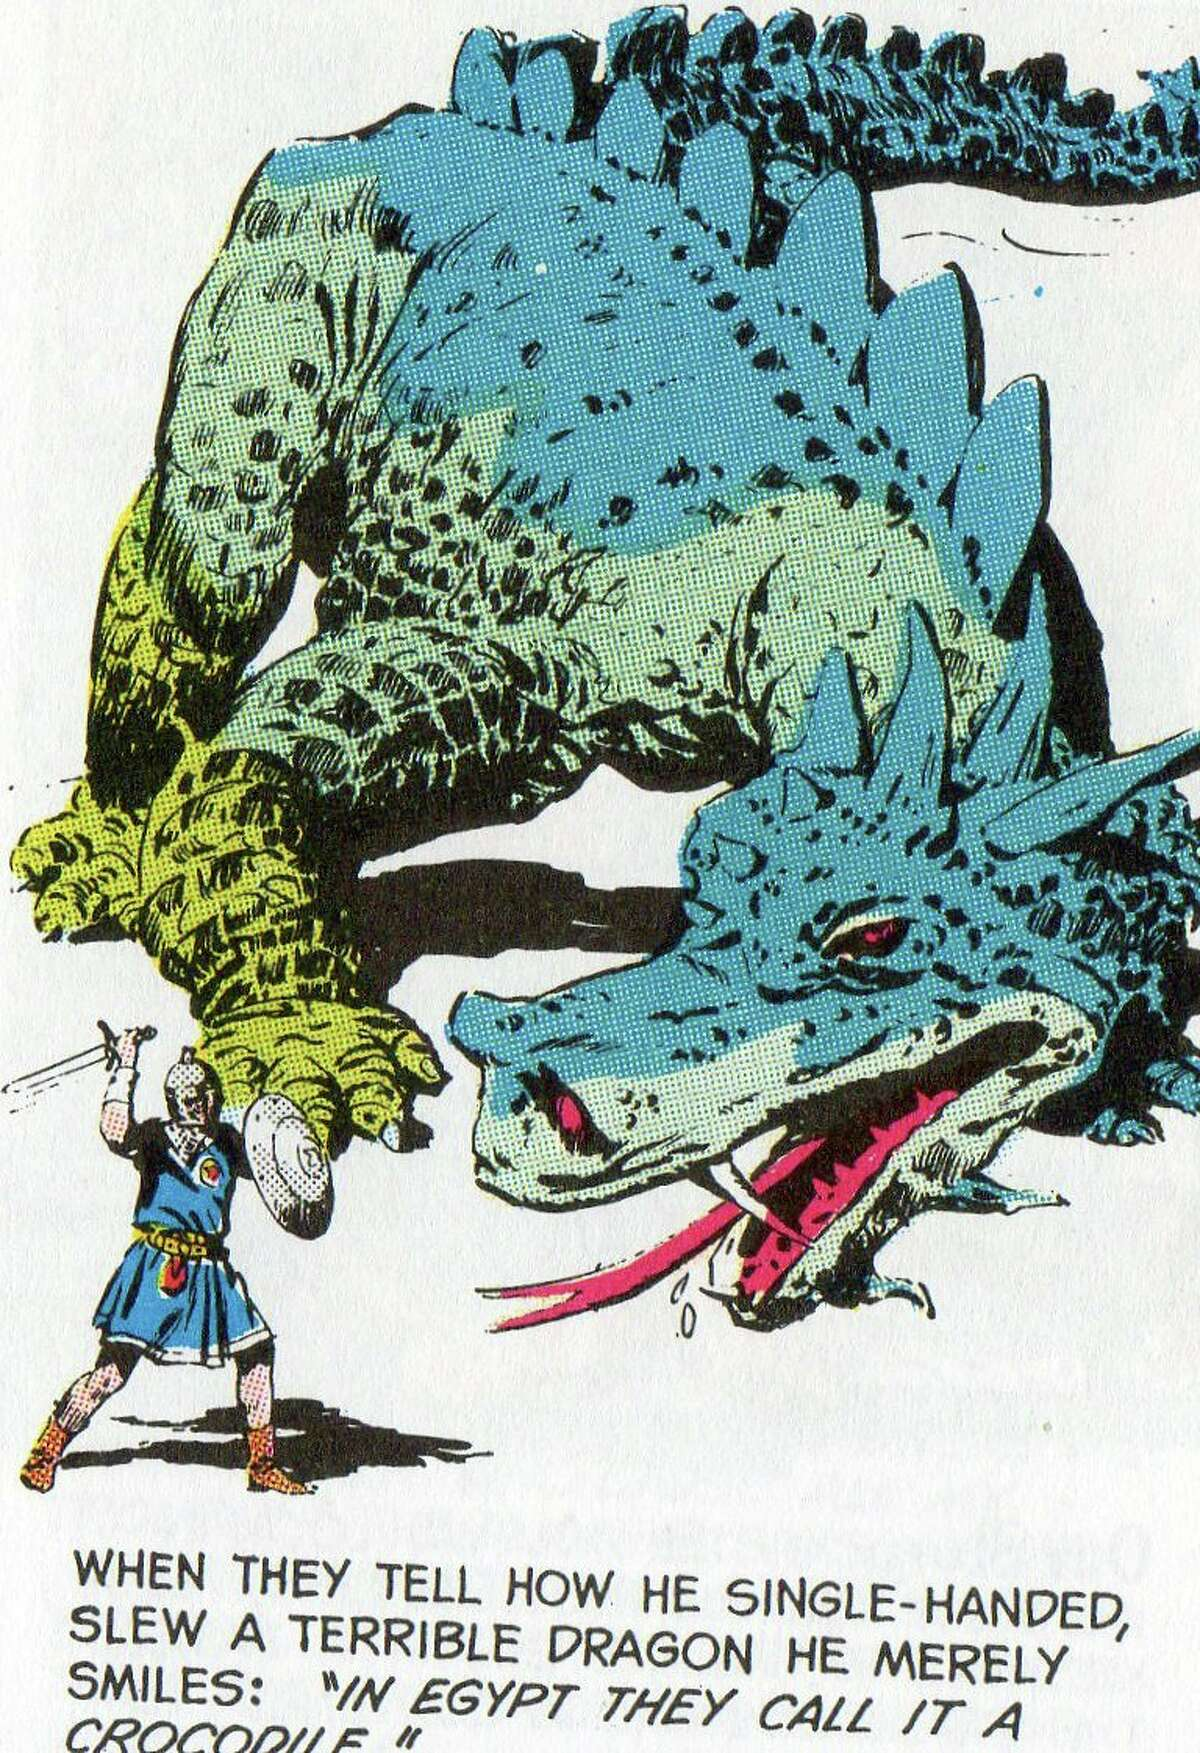 Valiant faces the dragon, err, crocodile, as depicted by John Cullen Murphy.